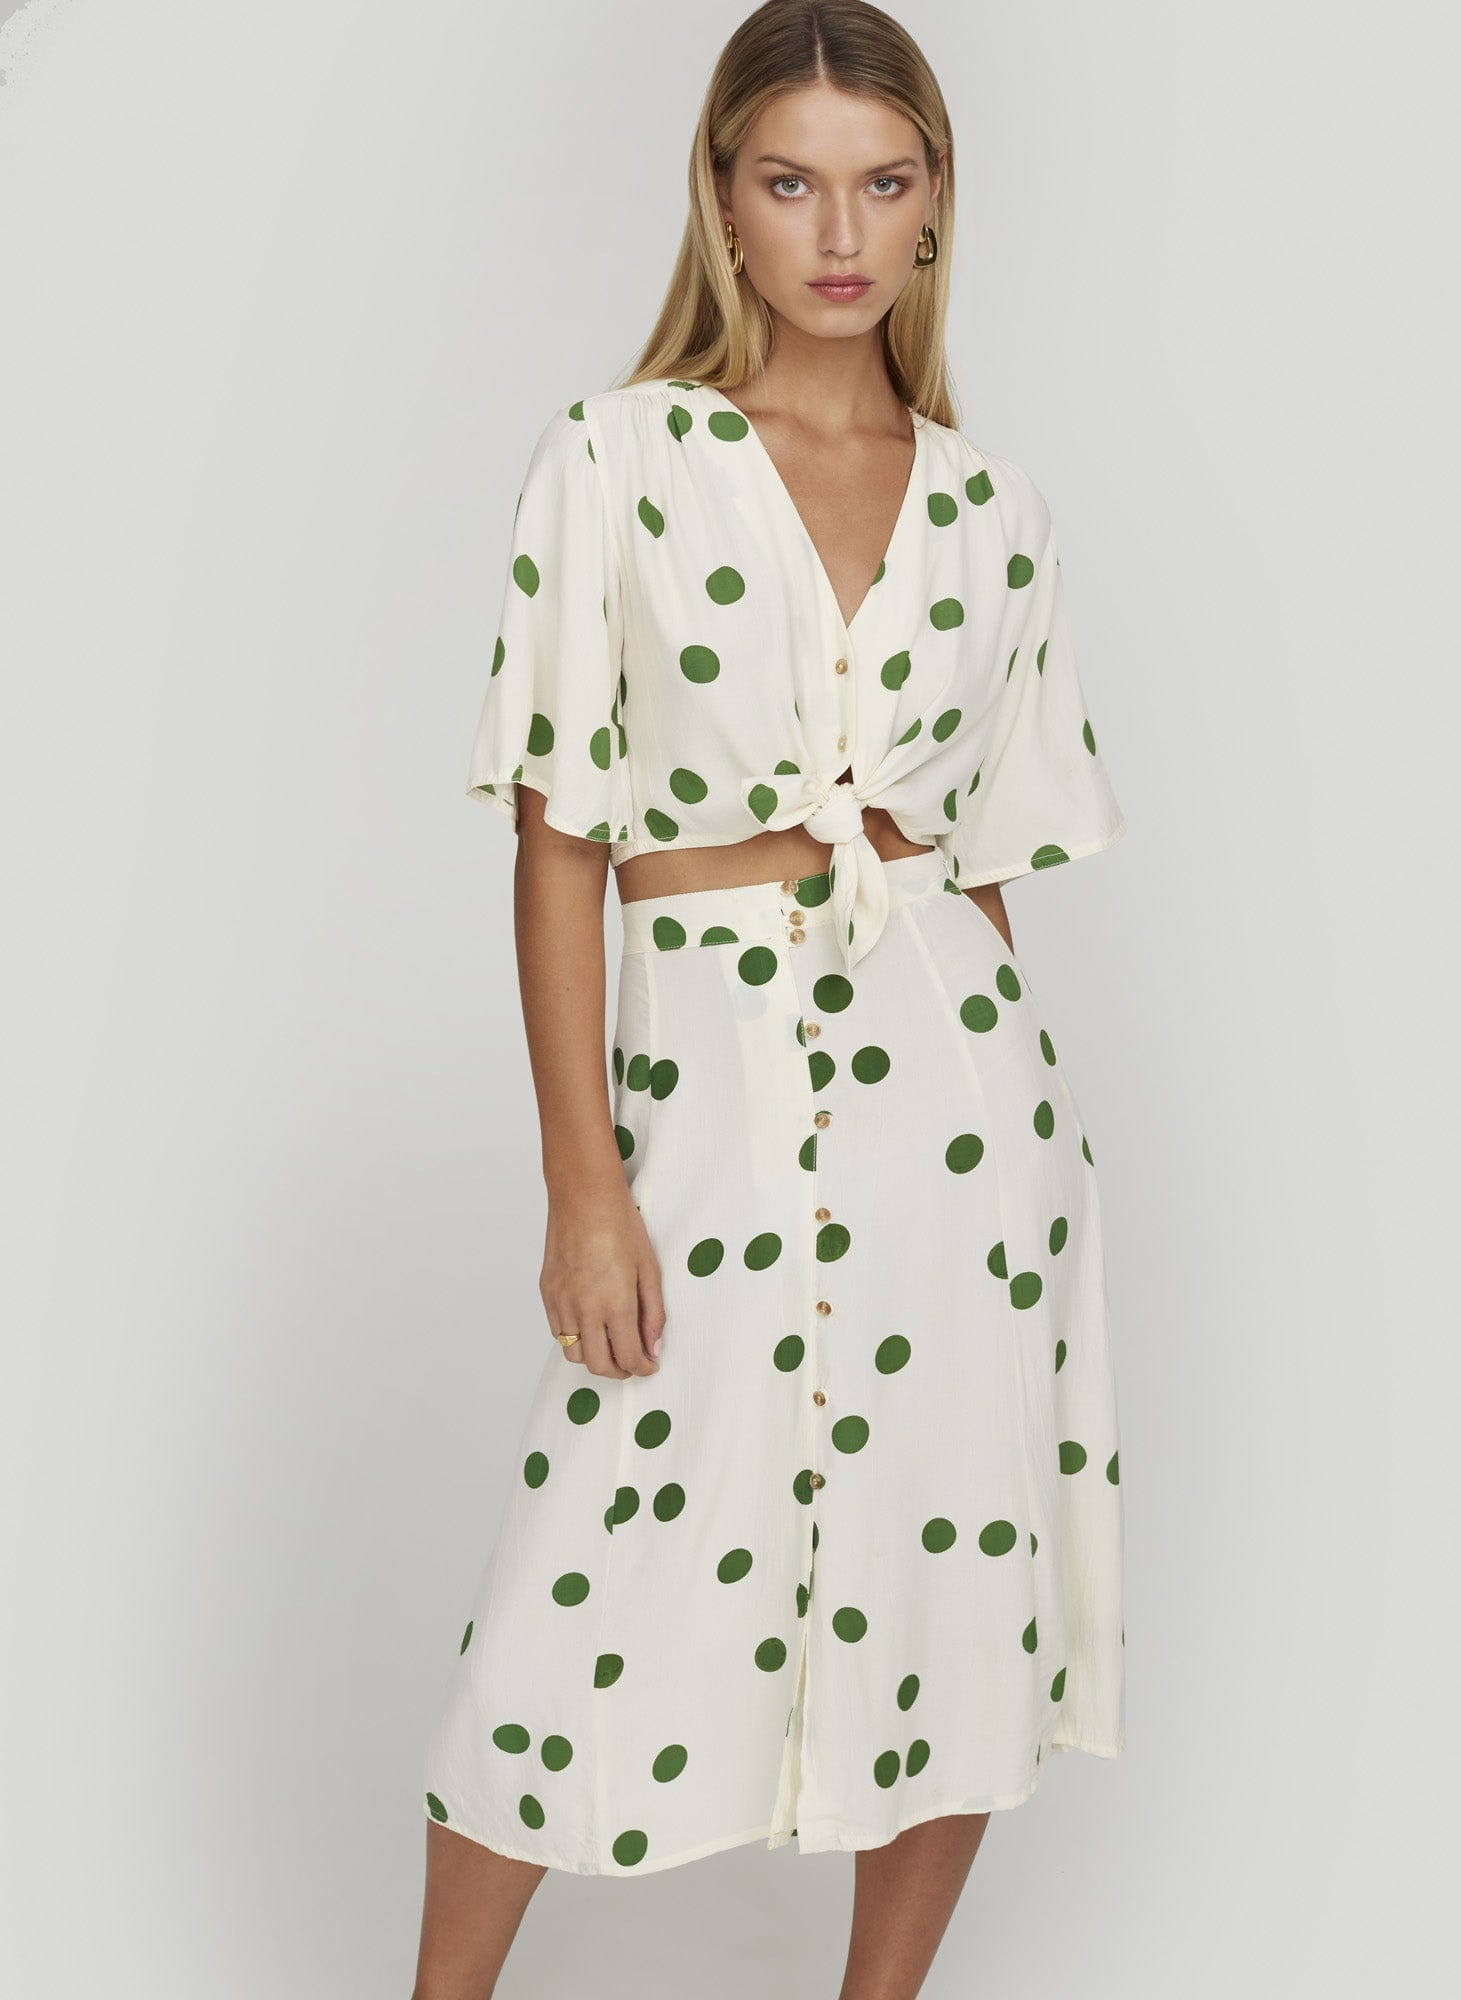 LOLITA DOT PRINT - GREEN - BOULEVARDS TOP